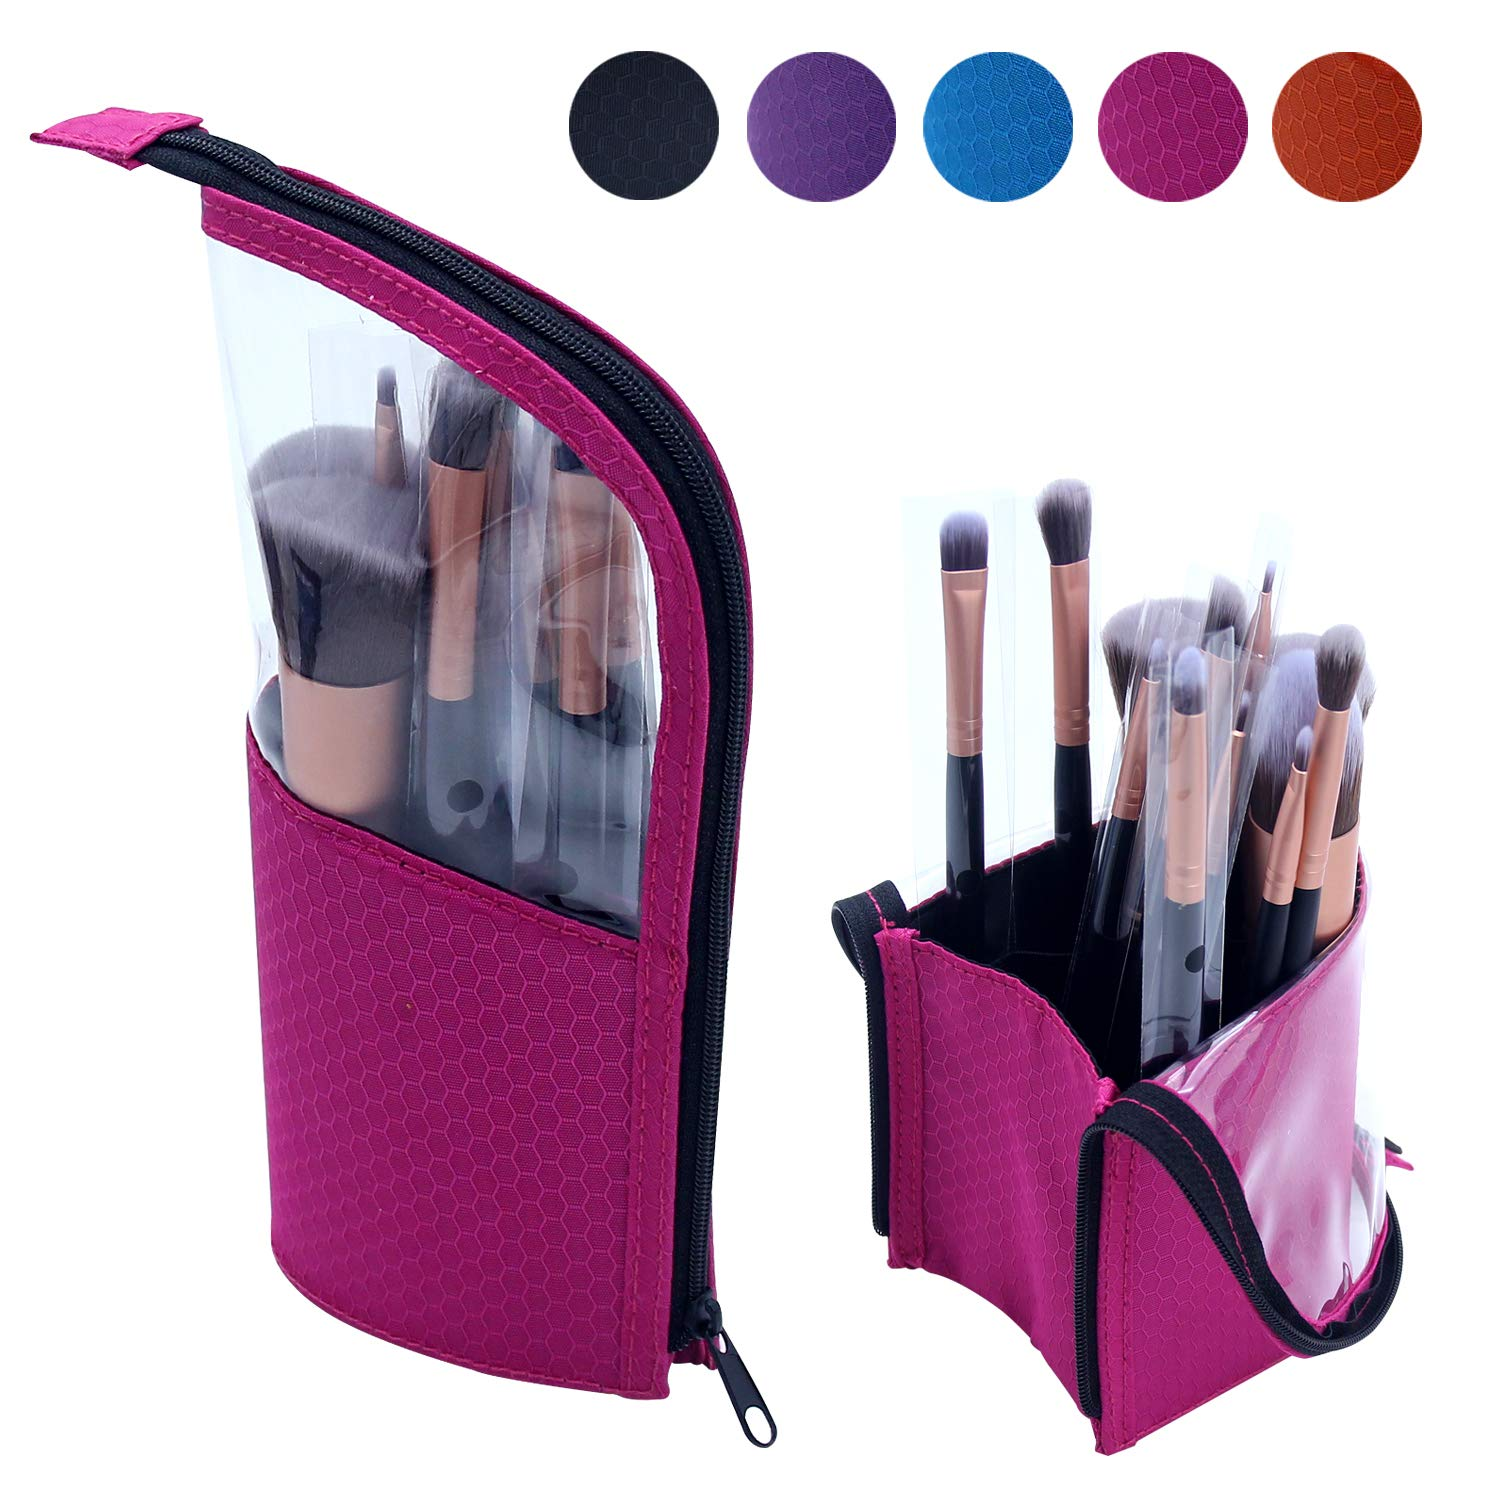 Portable Makeup Brush Holder, Small Clear Makeup Brush Bag Makeup Brush Organizer Waterproof Makeup Bag Makeup Brush Carrying Pencil Case FUS